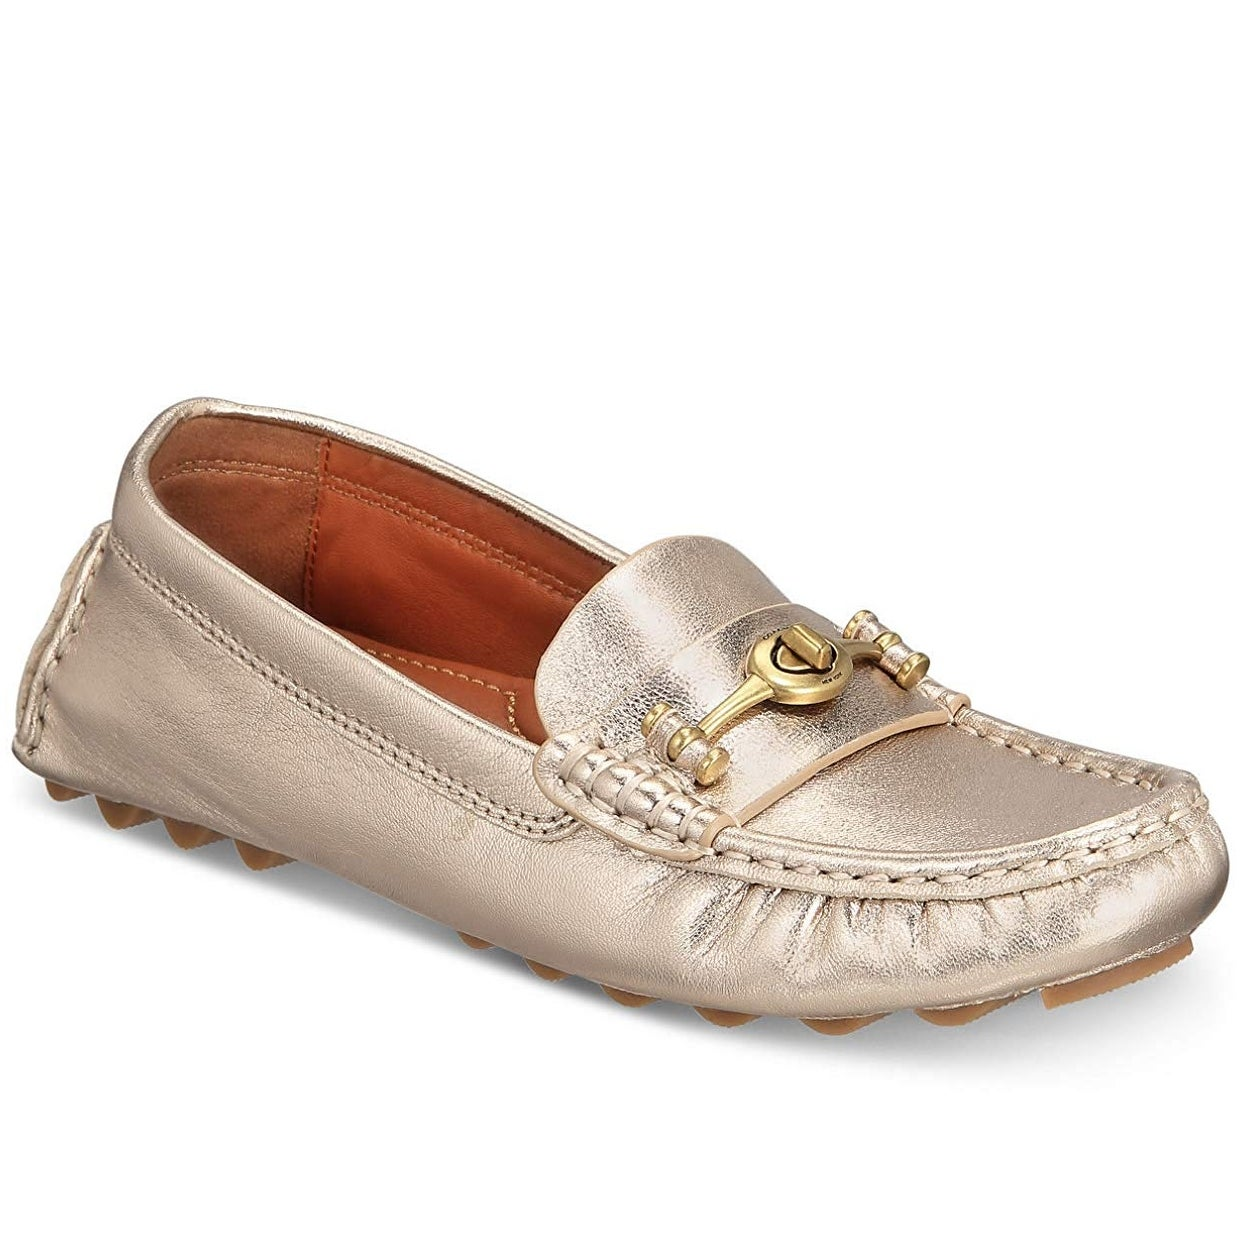 0ababcc547f5 Shop Coach Women's Crosby Driver Turnlock Flats Champagne - 10 ...